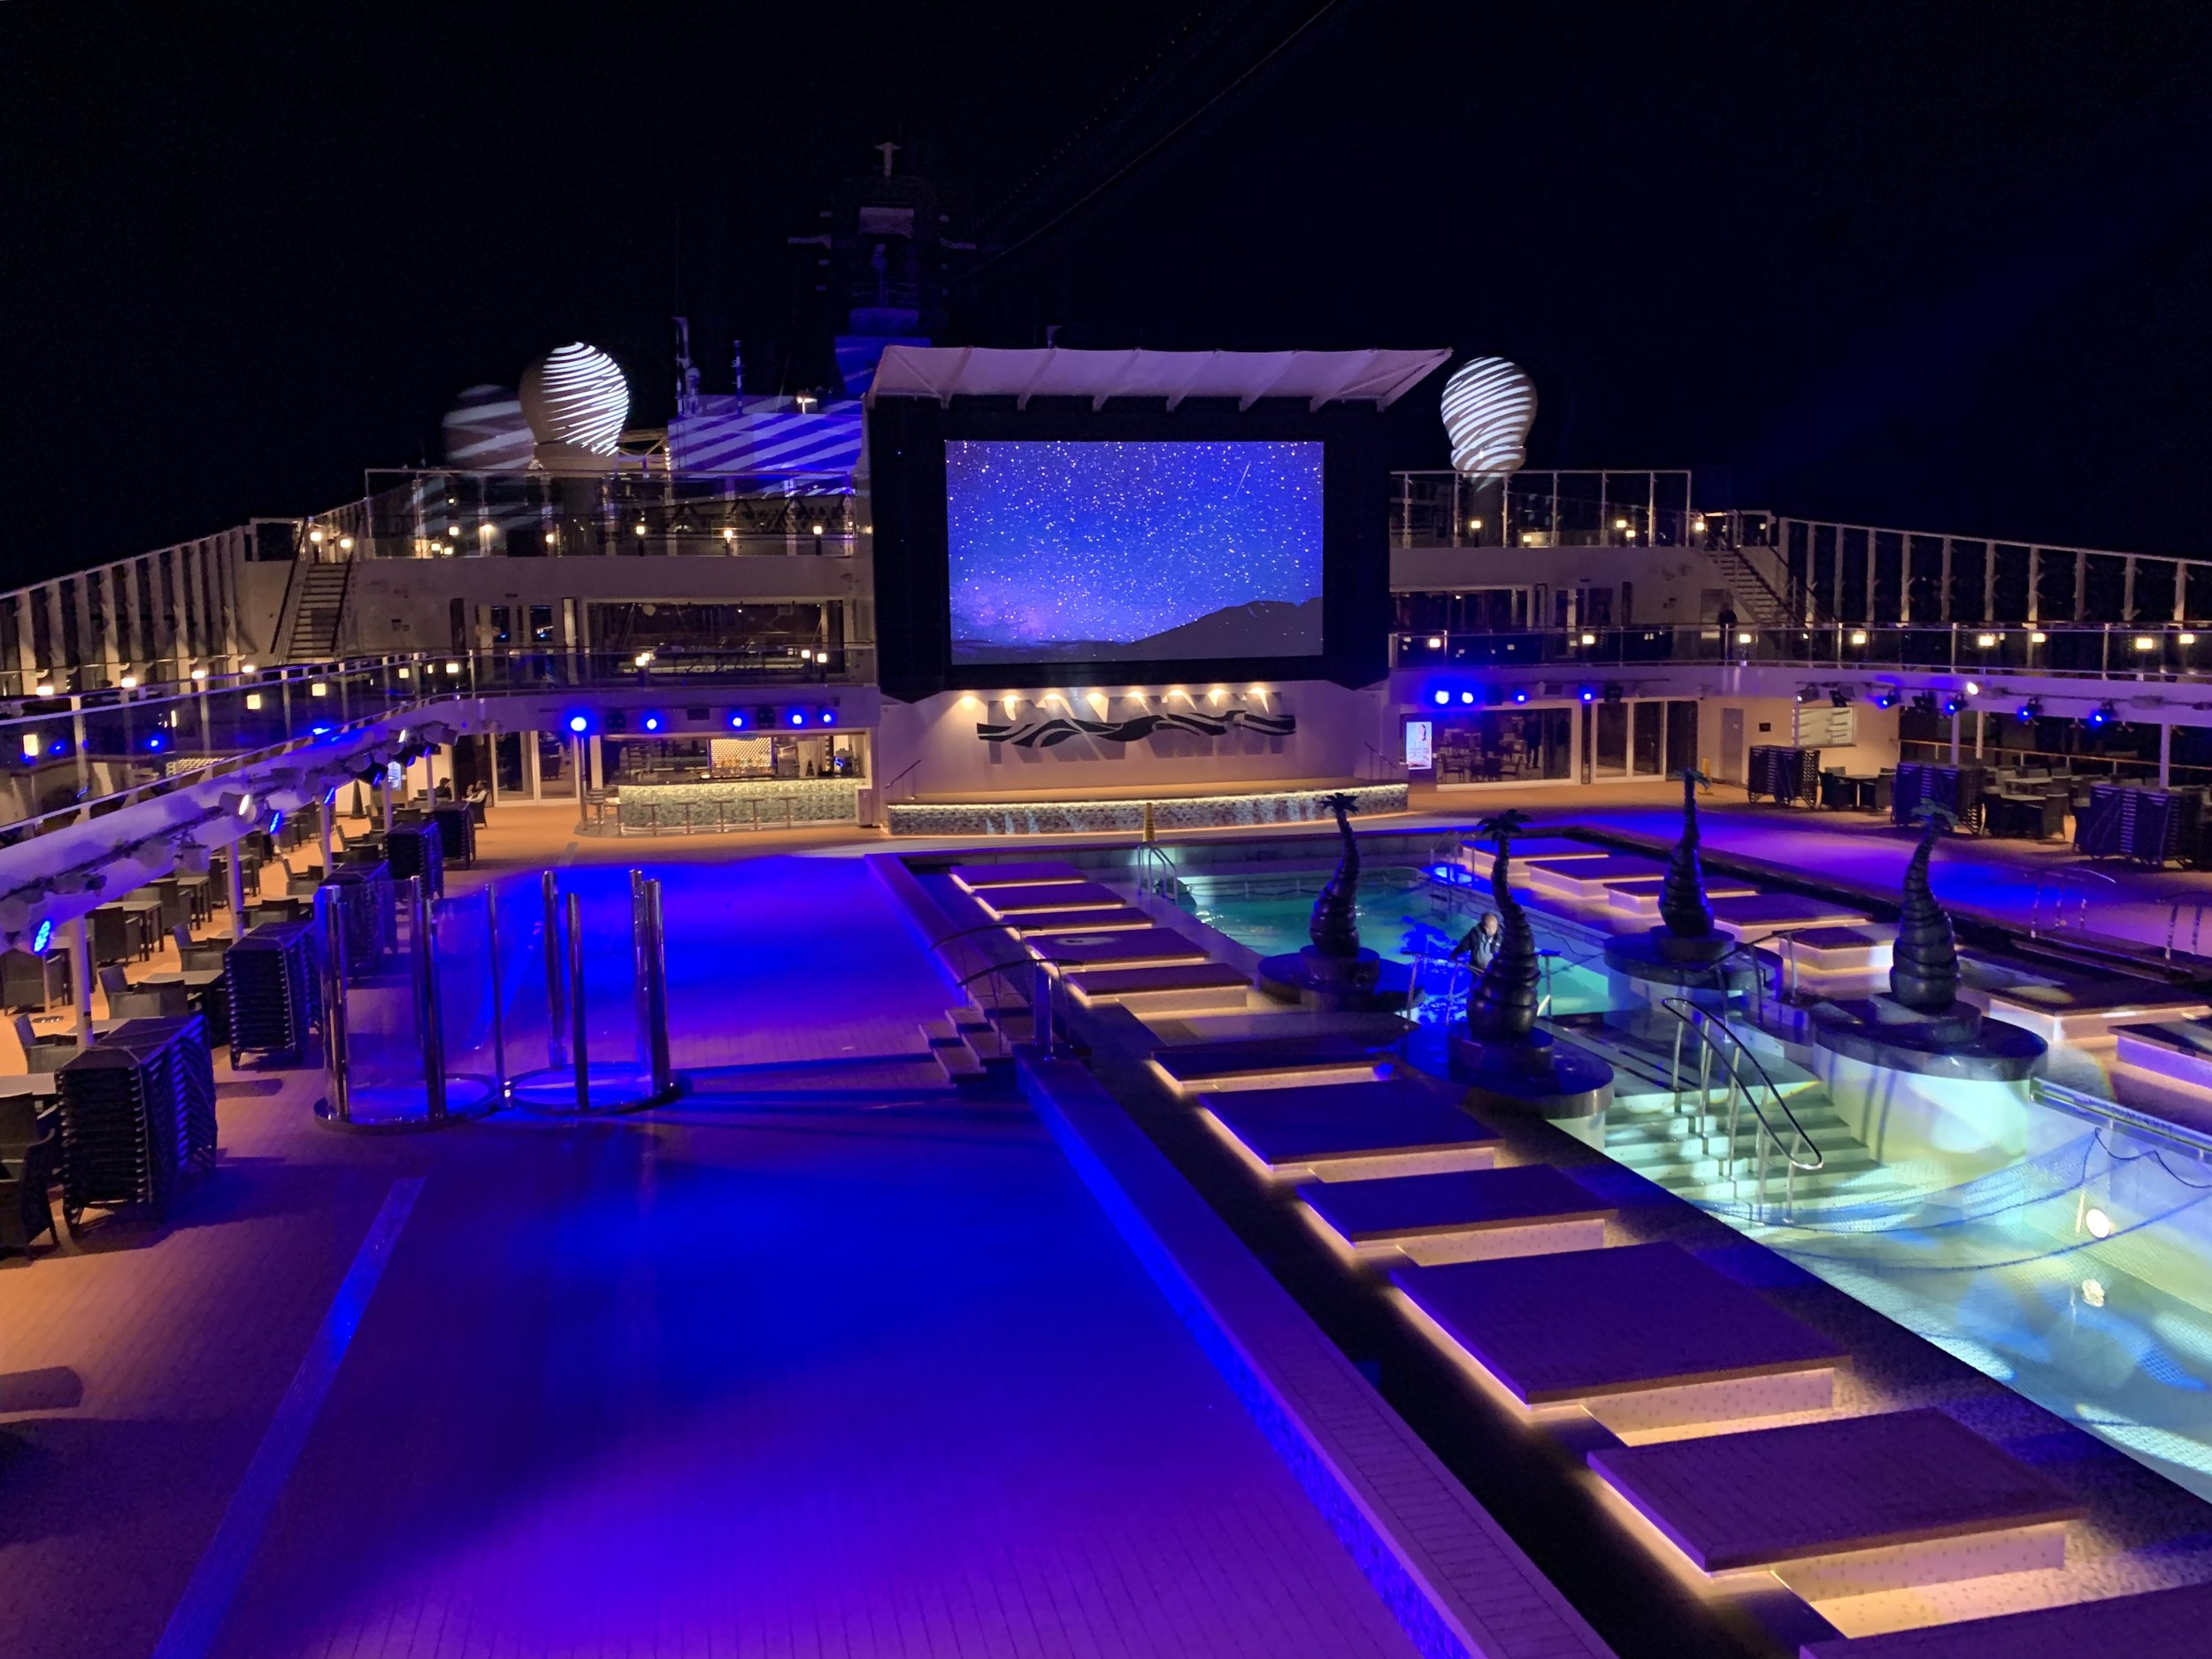 MSC Beliissima by night…beautiful indeed!